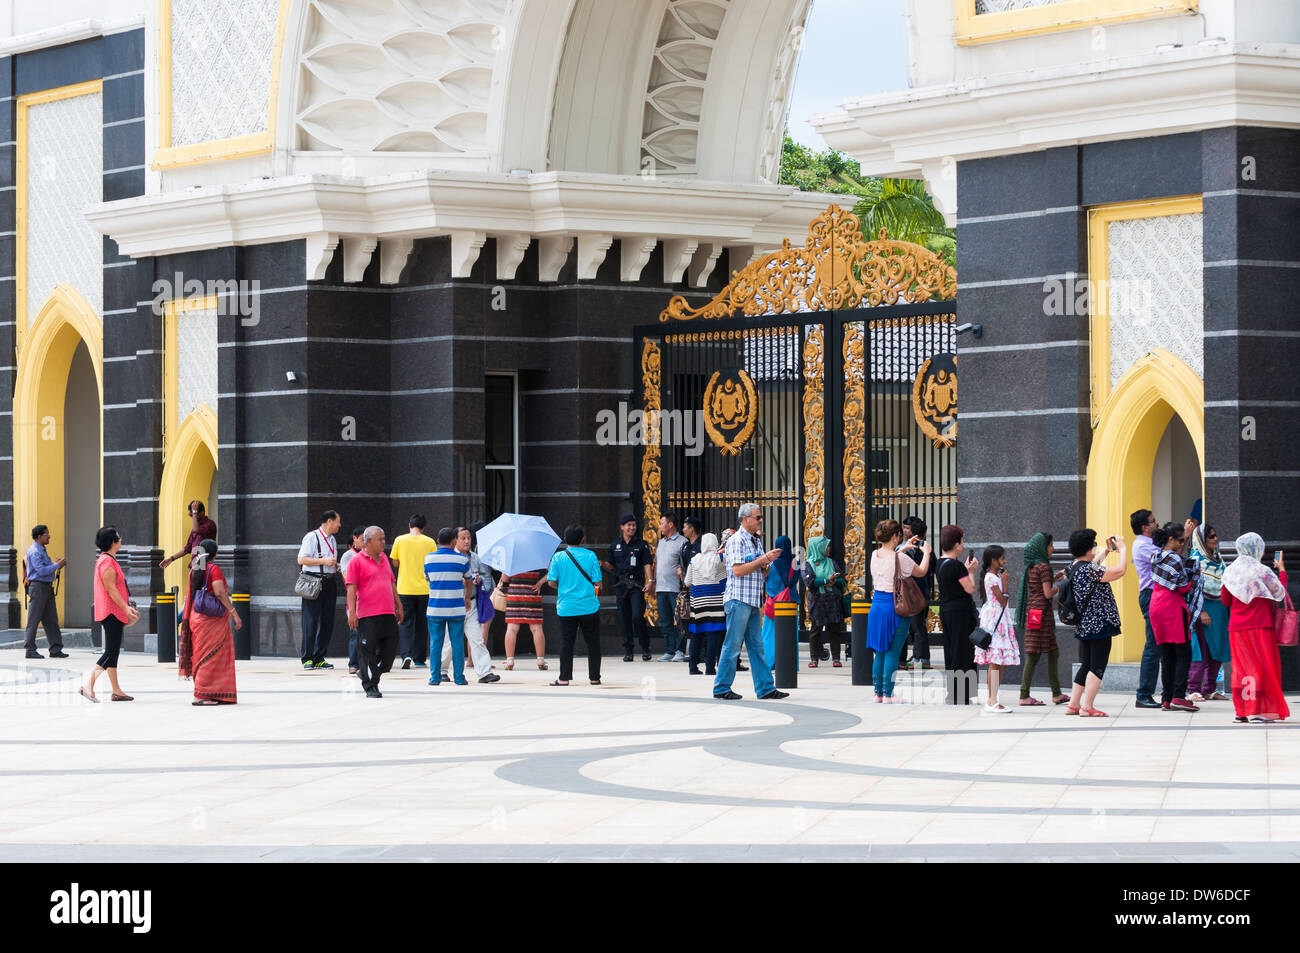 Tourists outside the massive front gate of the Istana Negara, the royal palace of Kuala Lumpur. - Stock Image